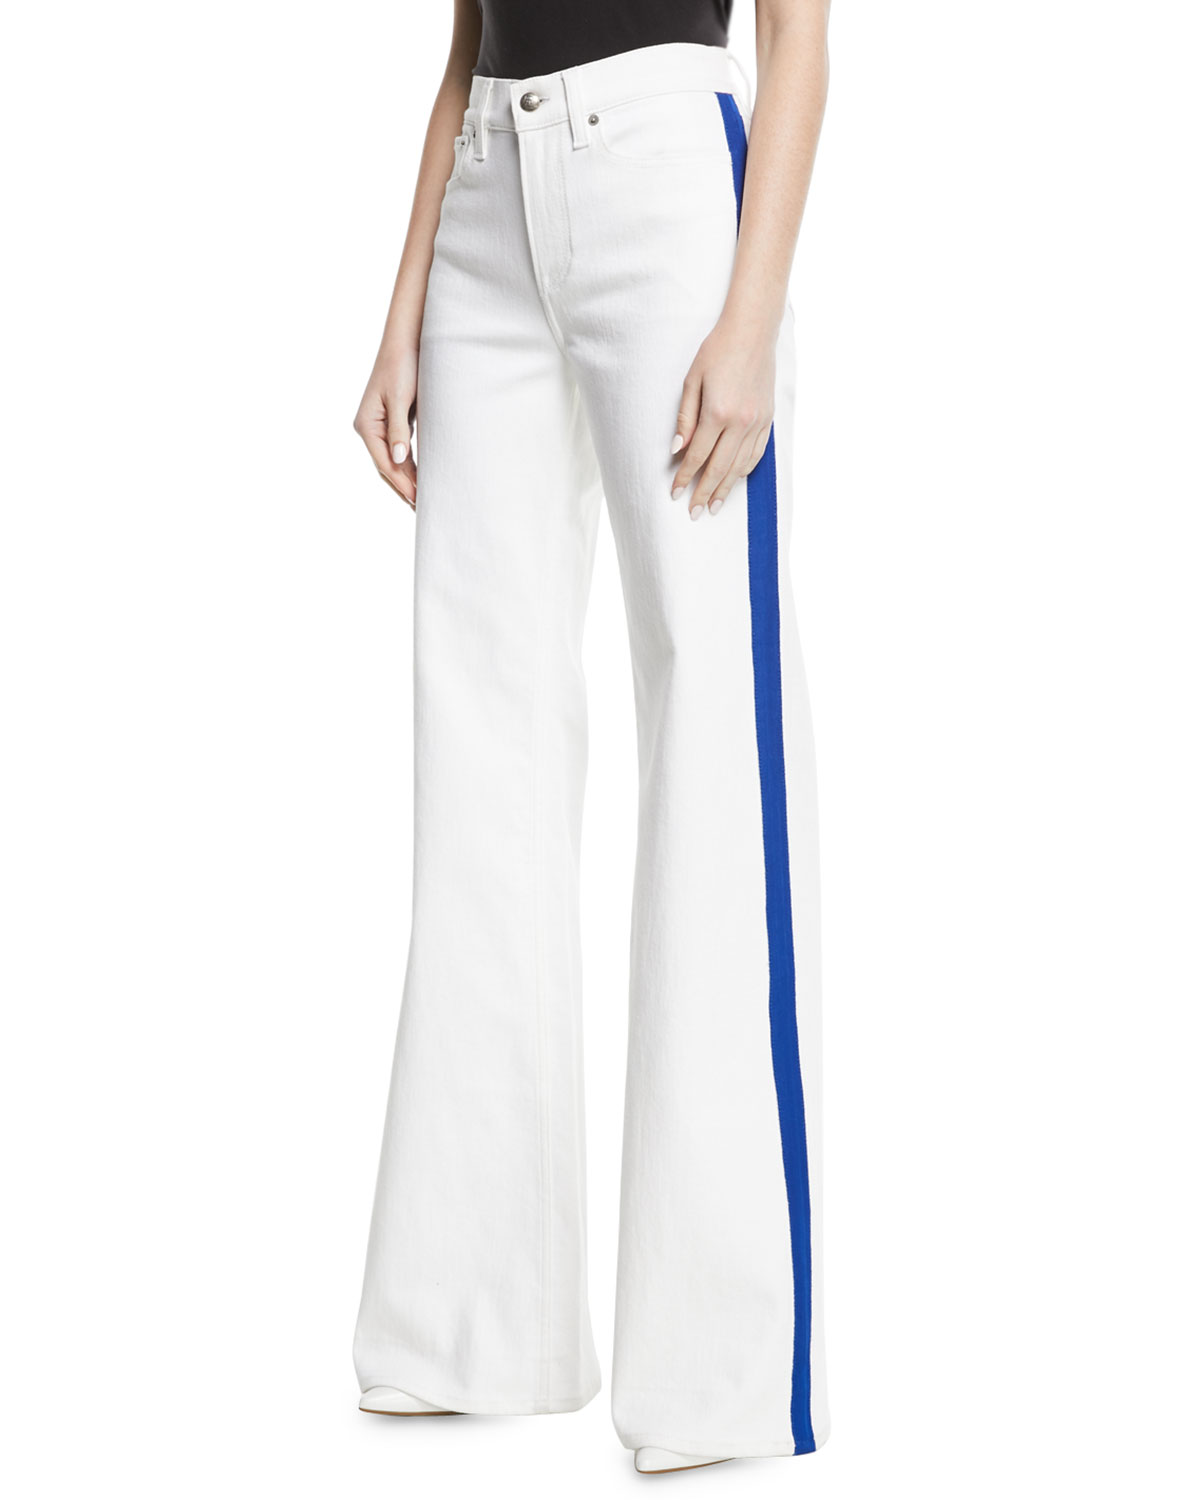 143 High-Rise Wide-Leg Jeans with Contrast Side Stripe